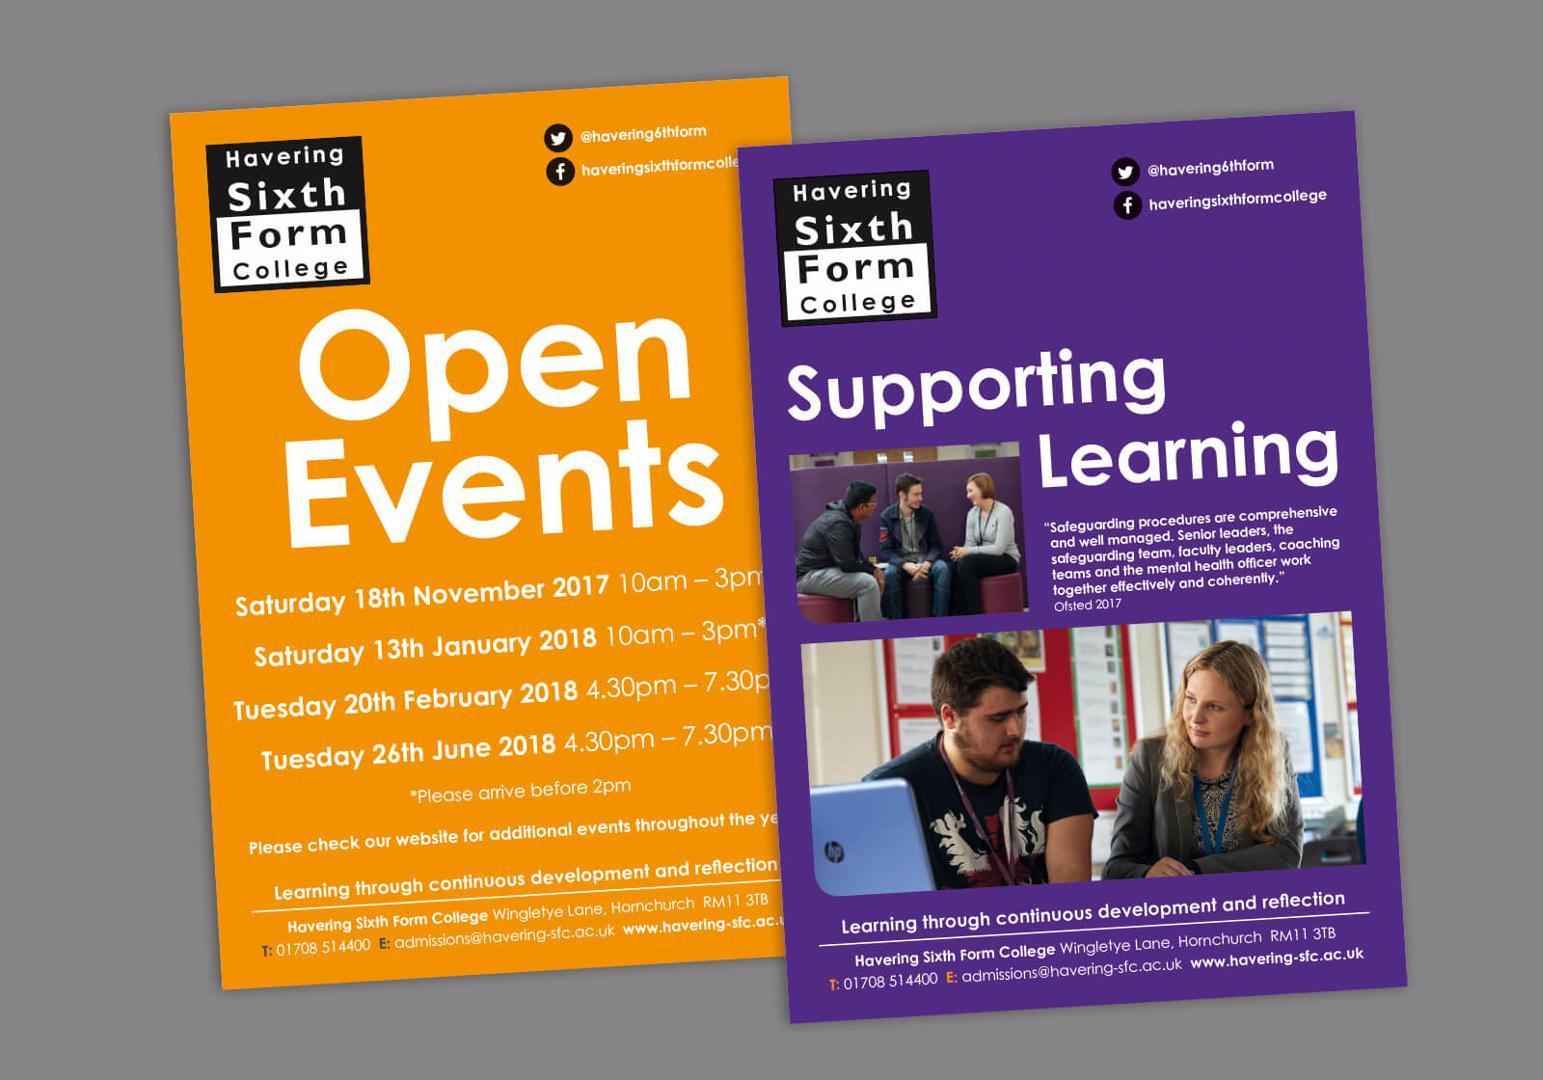 Offline marketing support for Havering Sixth Form College